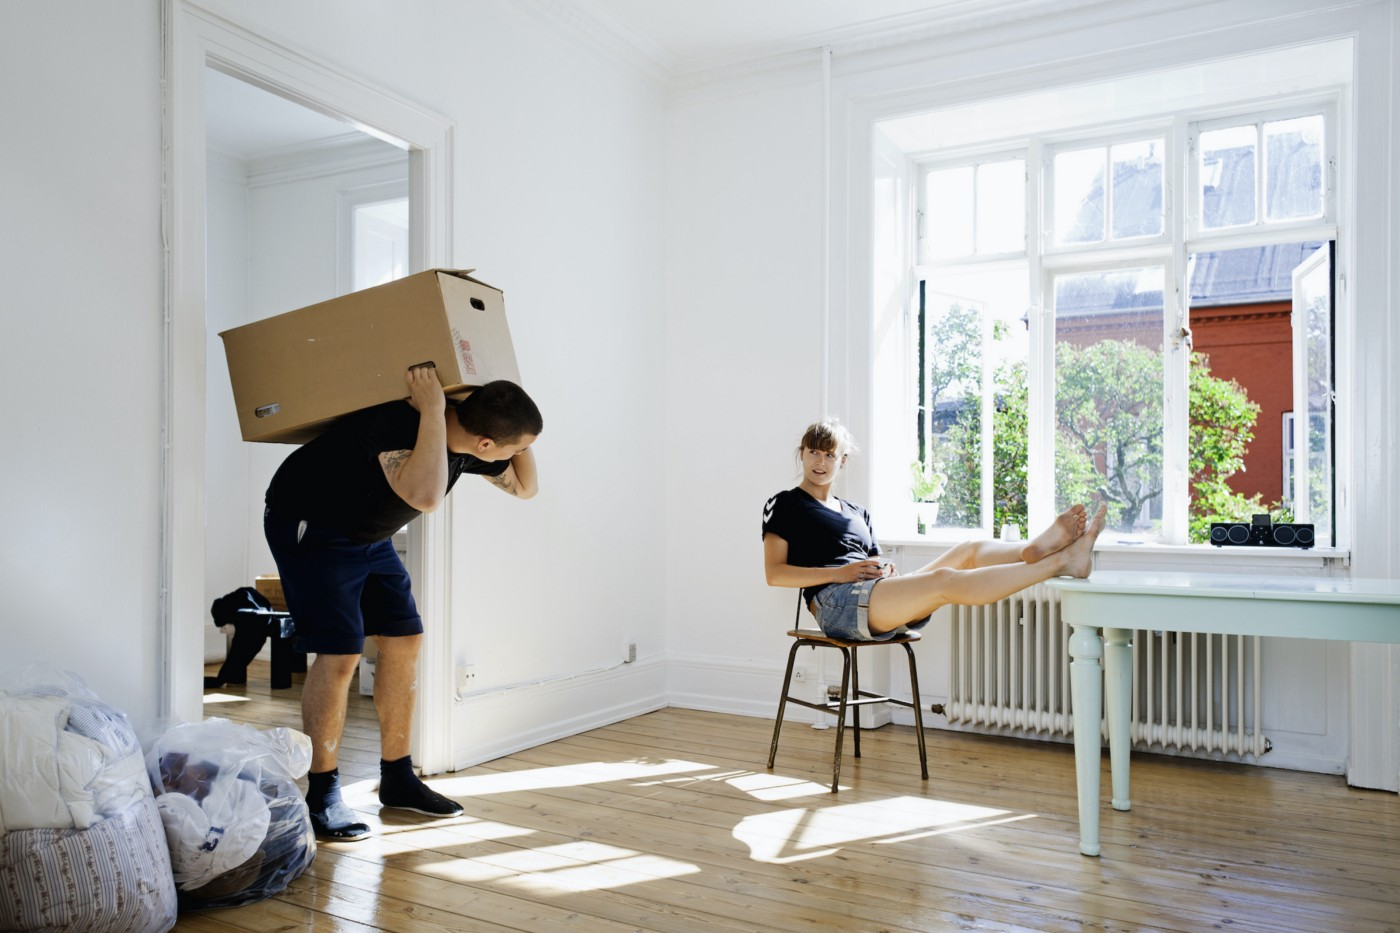 A mover carrying a box on their back, looking at a person with their feet on a table next to an open window.